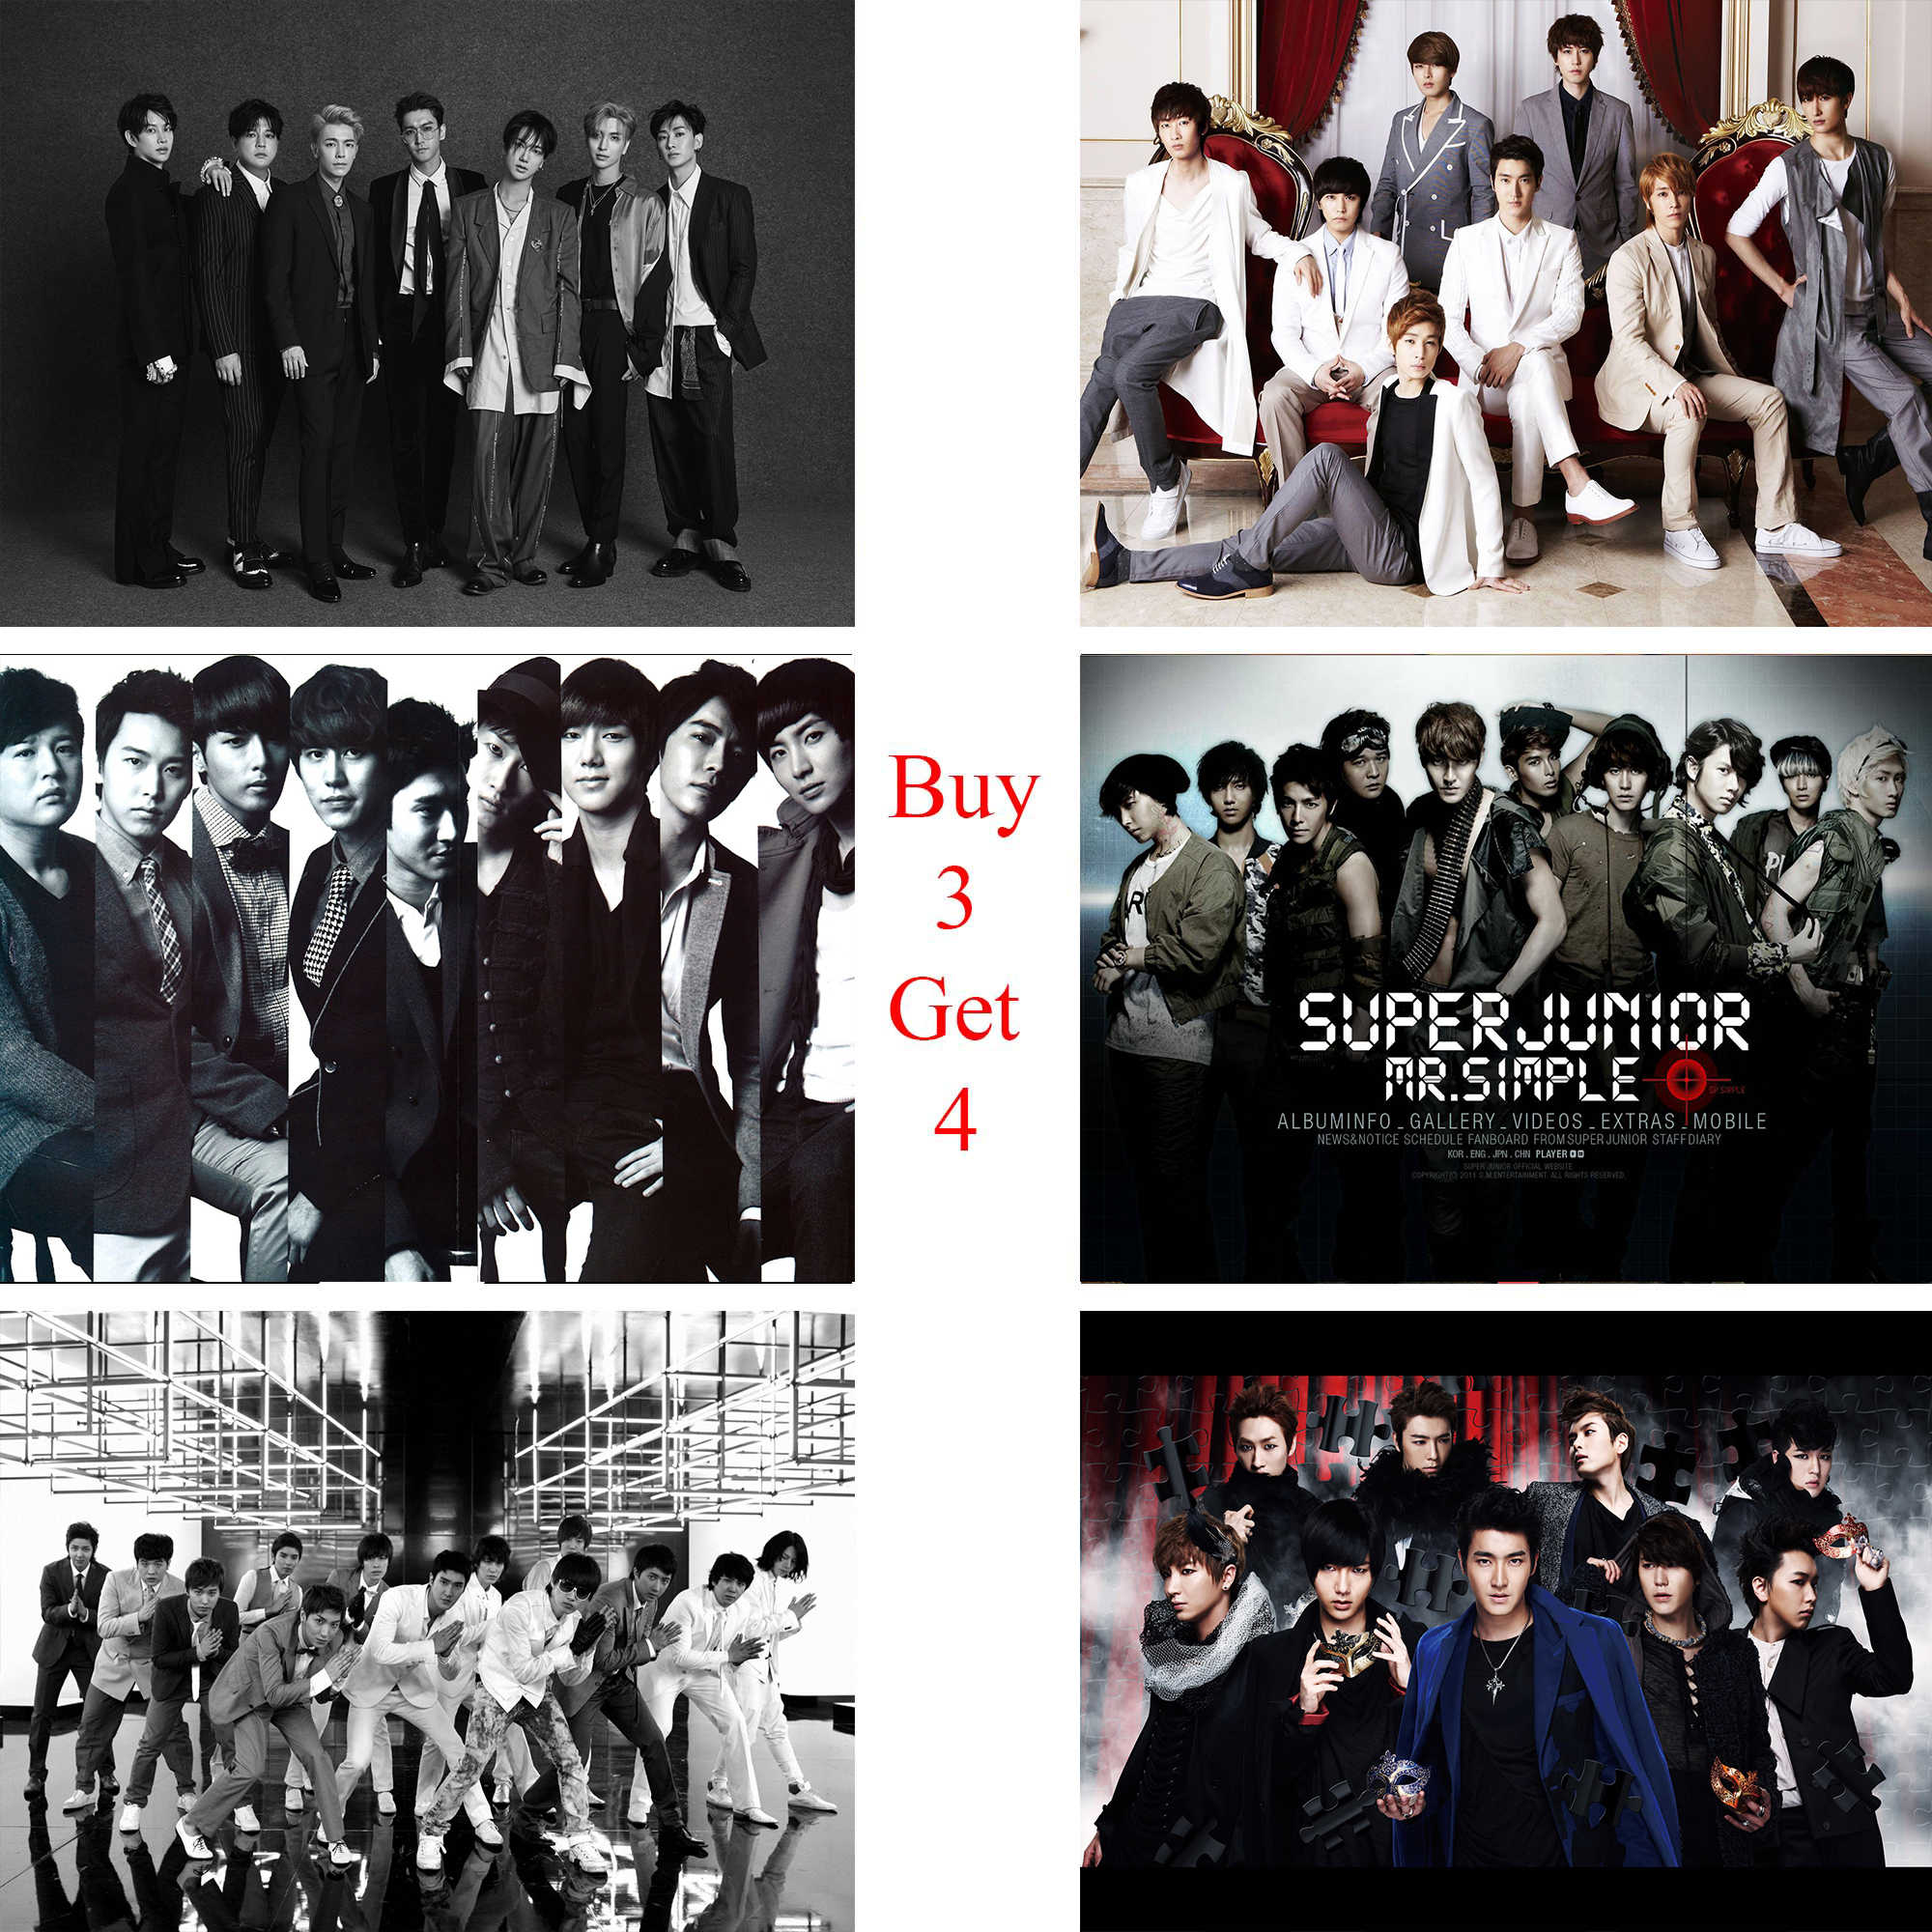 Super Junior Posters K-POP Music Wall Stickers White Coated Paper Prints Clear Image Home Decoration Home Art Brand